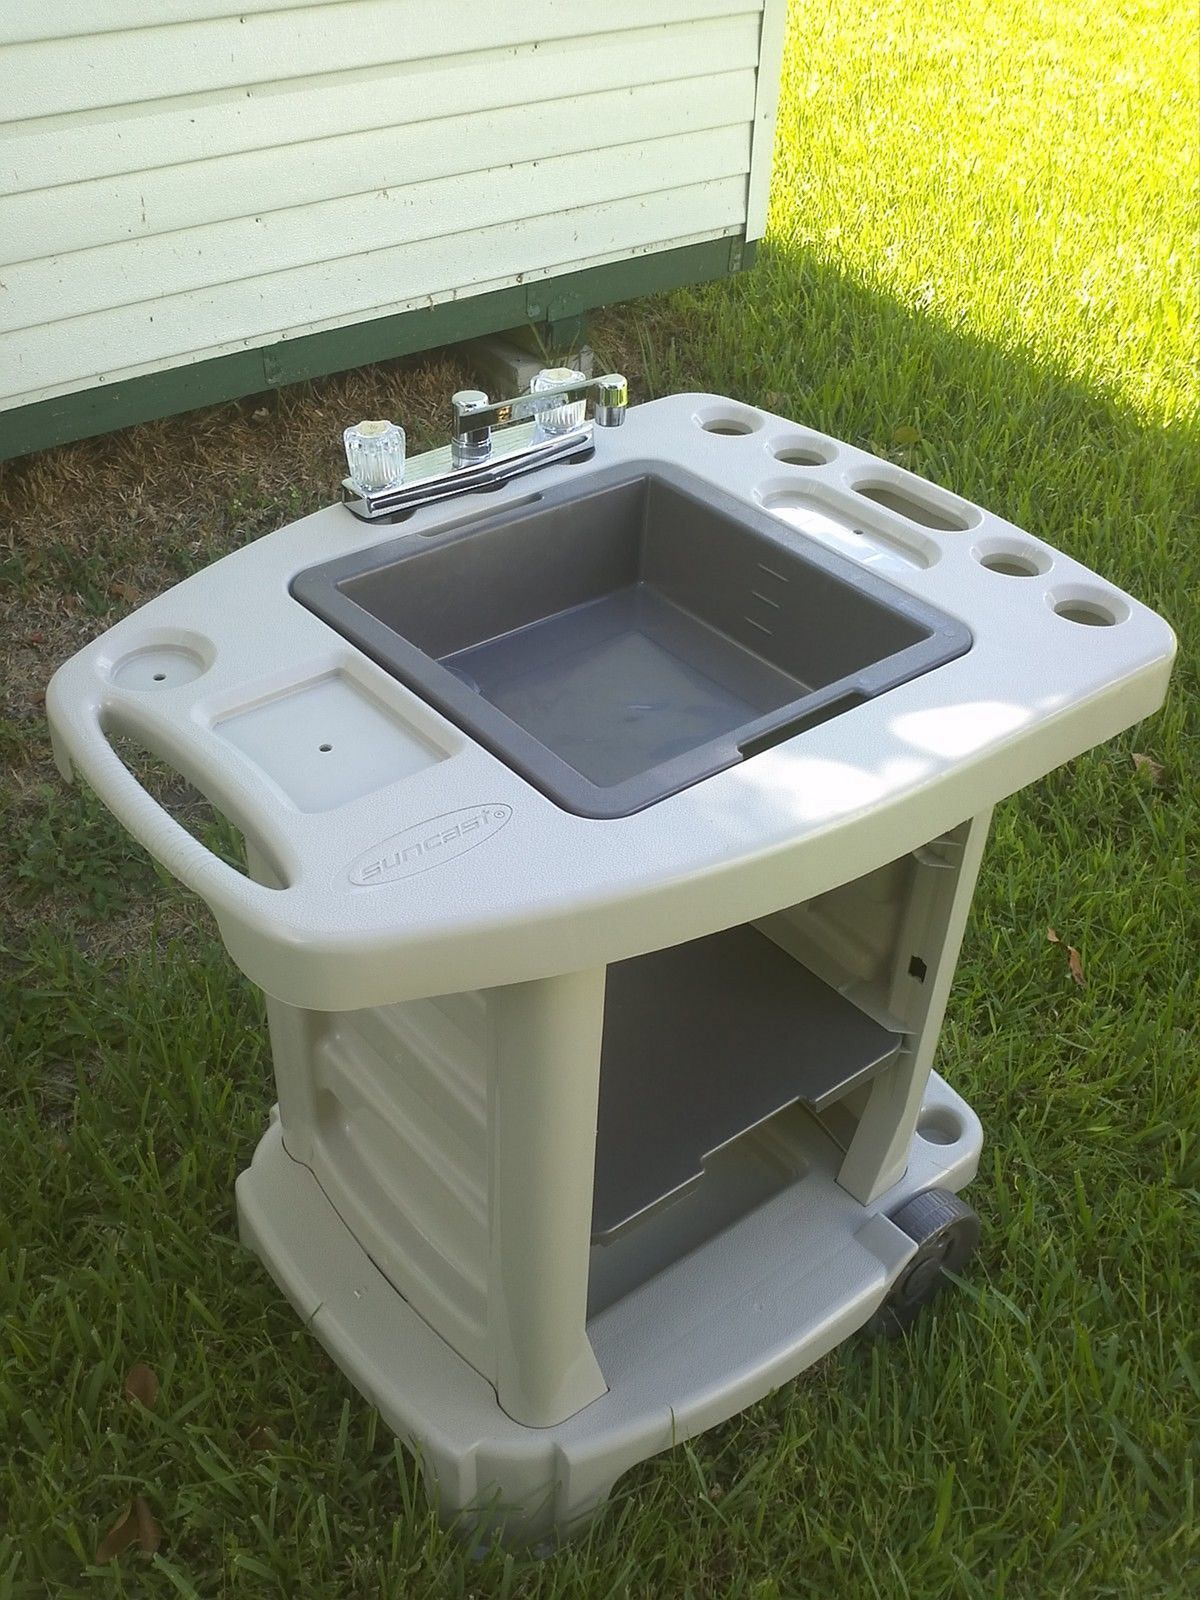 23 Awesome RV Kitchen Sink Design Ideas For Preparing Your Vacation